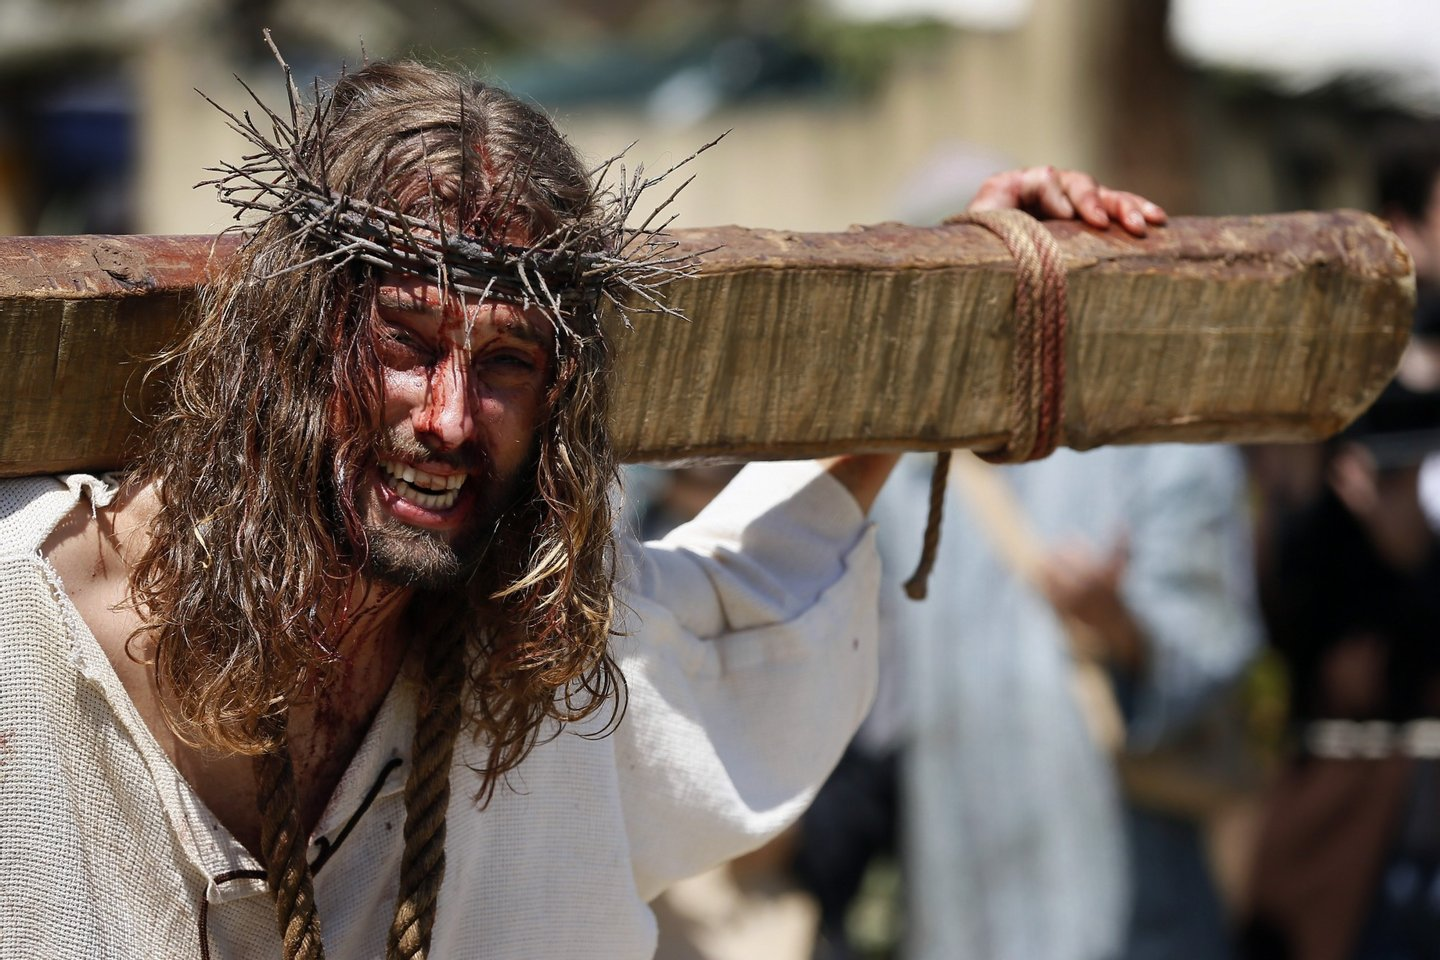 An actor performs the Passion of Christ during Good Friday, in Castro Urdiales, province of Cantabria in northern Spain on April 18, 2014. Living Passion is a representation of the Passion of Christ from the last supper to his crucifixion, death and resurrection.   AFP PHOTO/ CESAR MANSO        (Photo credit should read CESAR MANSO/AFP/Getty Images)